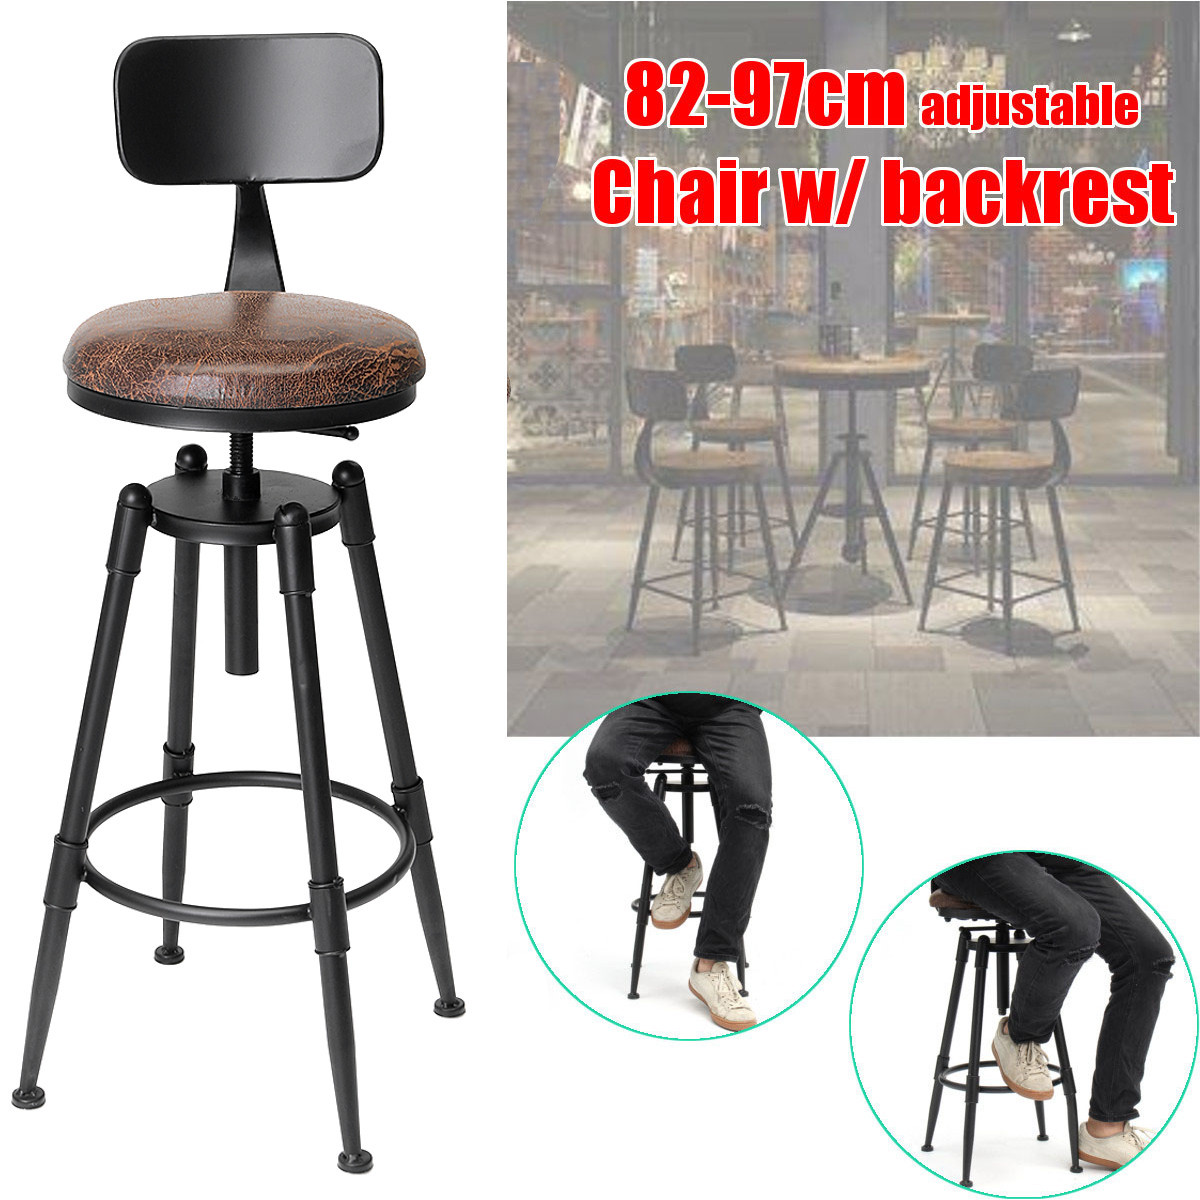 Fabulous Adjustable Industrial Dining Chairs High Chair Bar Chair Alphanode Cool Chair Designs And Ideas Alphanodeonline